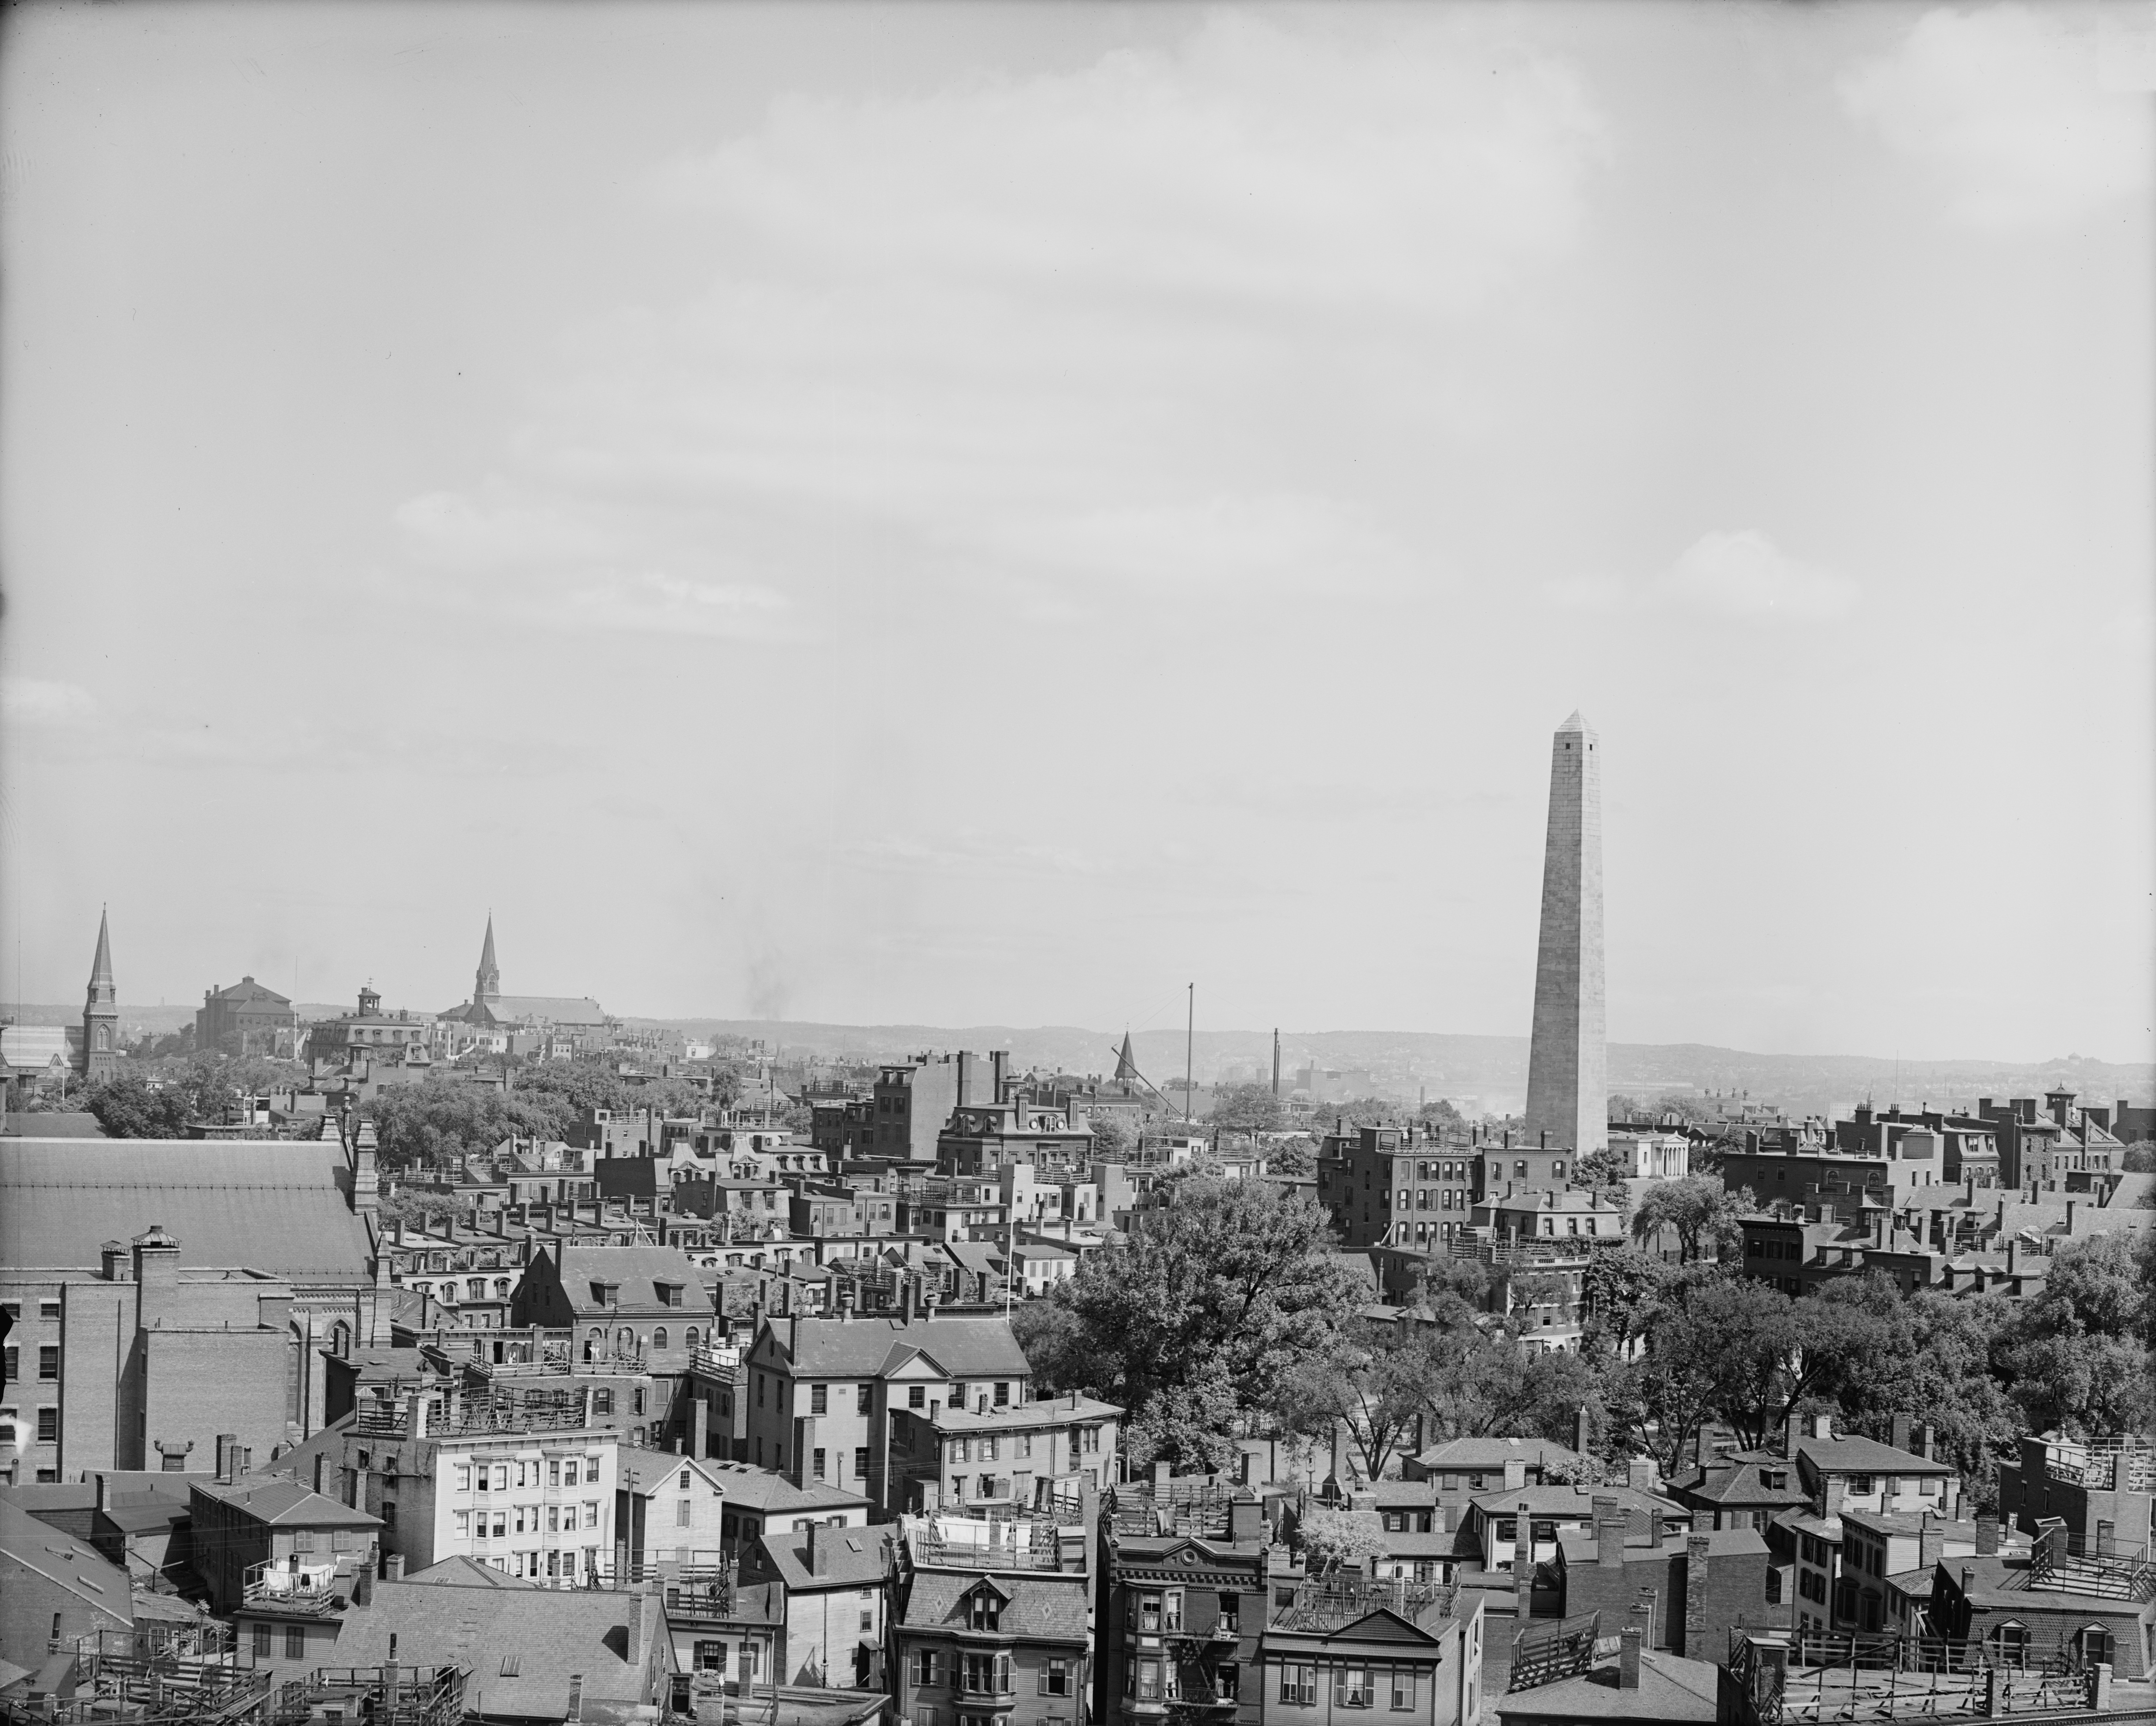 Birdseye view of Boston, Charlestown, and Bunker Hill, between 1890 and 1910